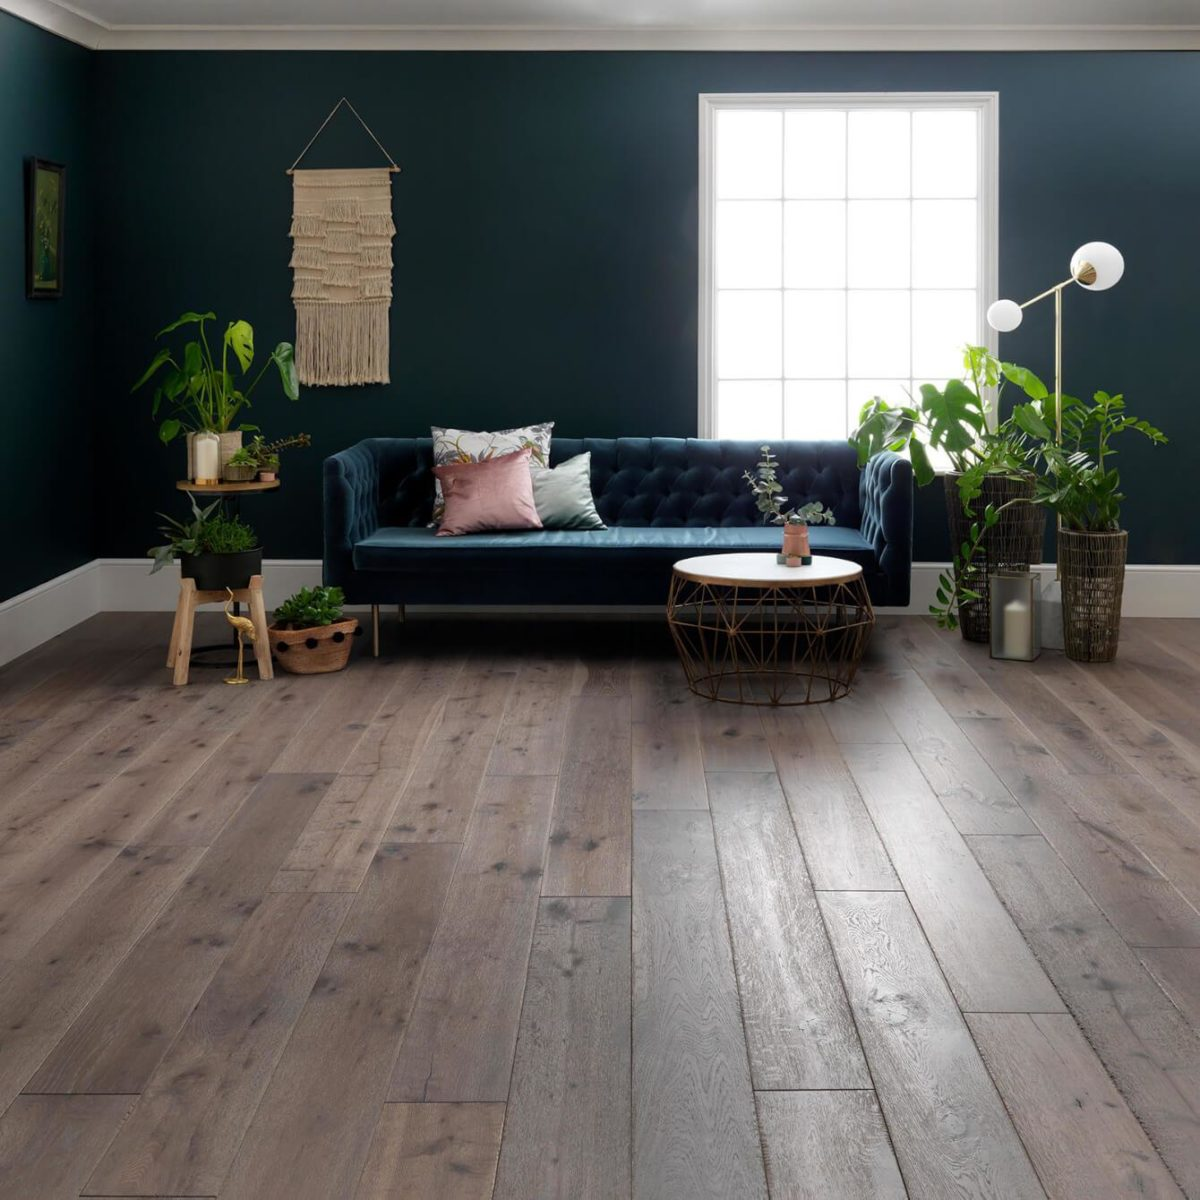 Give your home the look it deserves with Woodpecker flooring